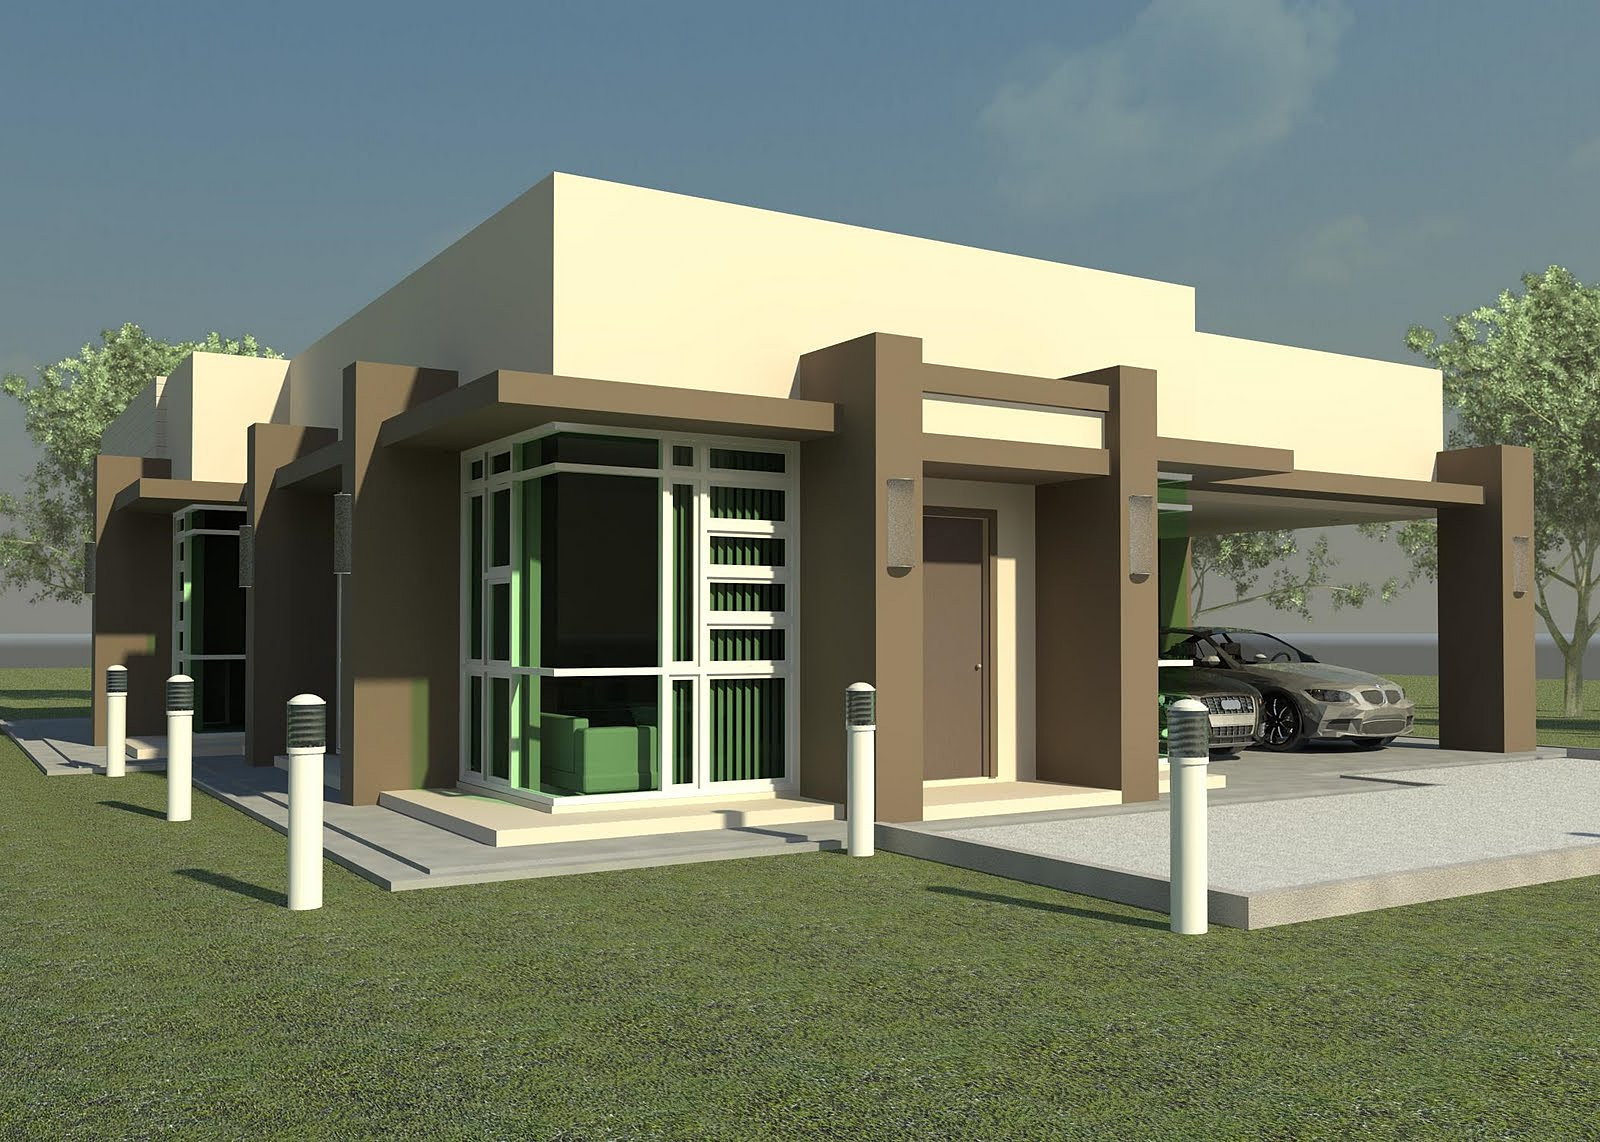 Bulawayo House Plan Design and Drafting - ^